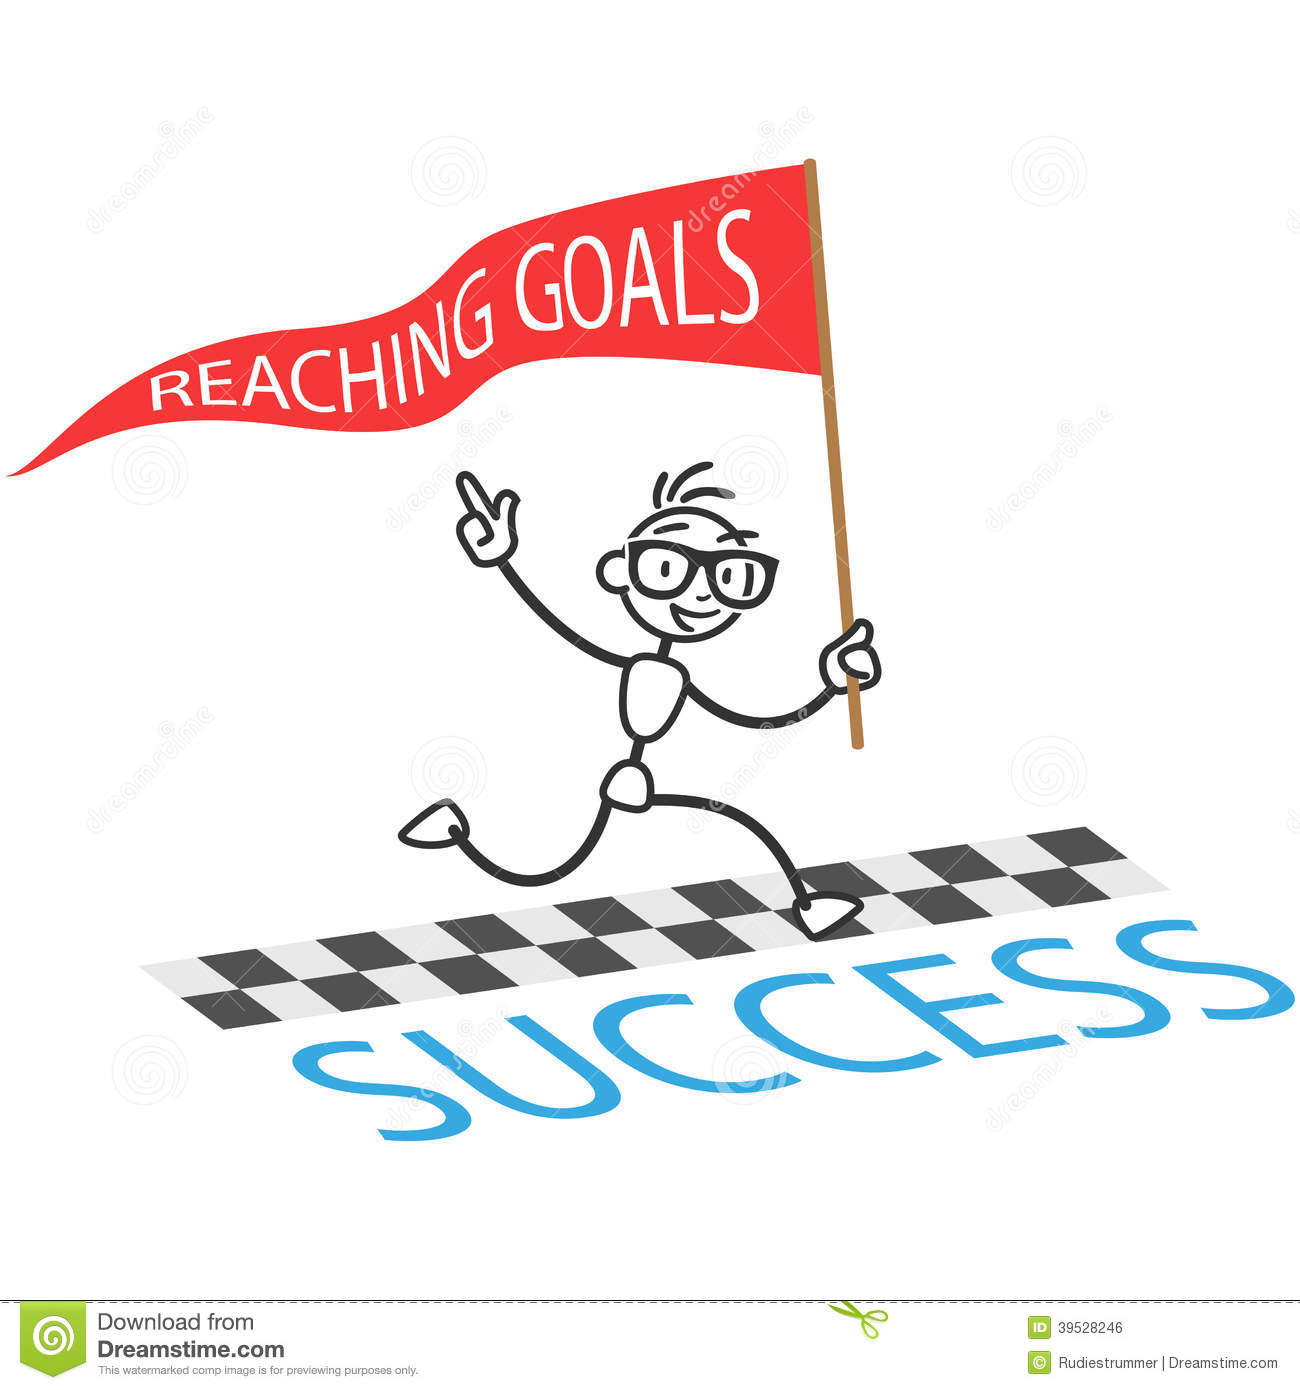 Stick Figure With Flag Labeled Reaching Goals Crossing Finishing Line